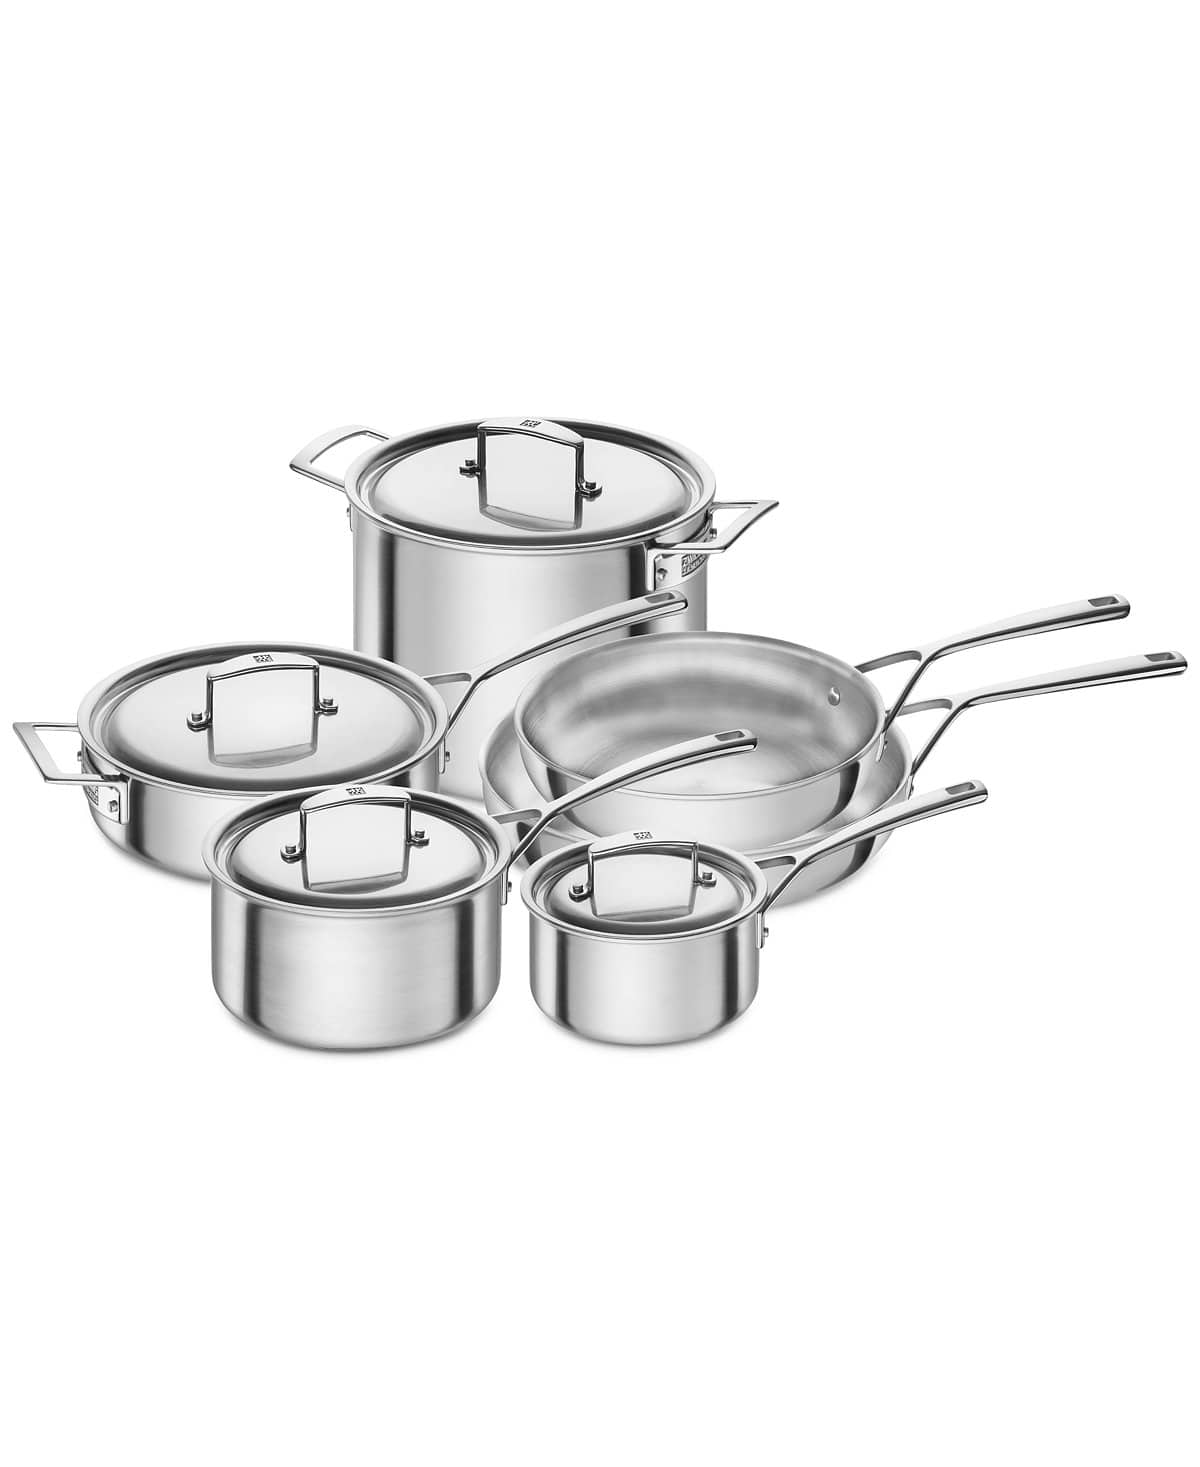 10-Piece J.A. Henckels Zwilling Aurora 5-Ply Cookware Set $483.60 + free shipping ($700 on amazon)